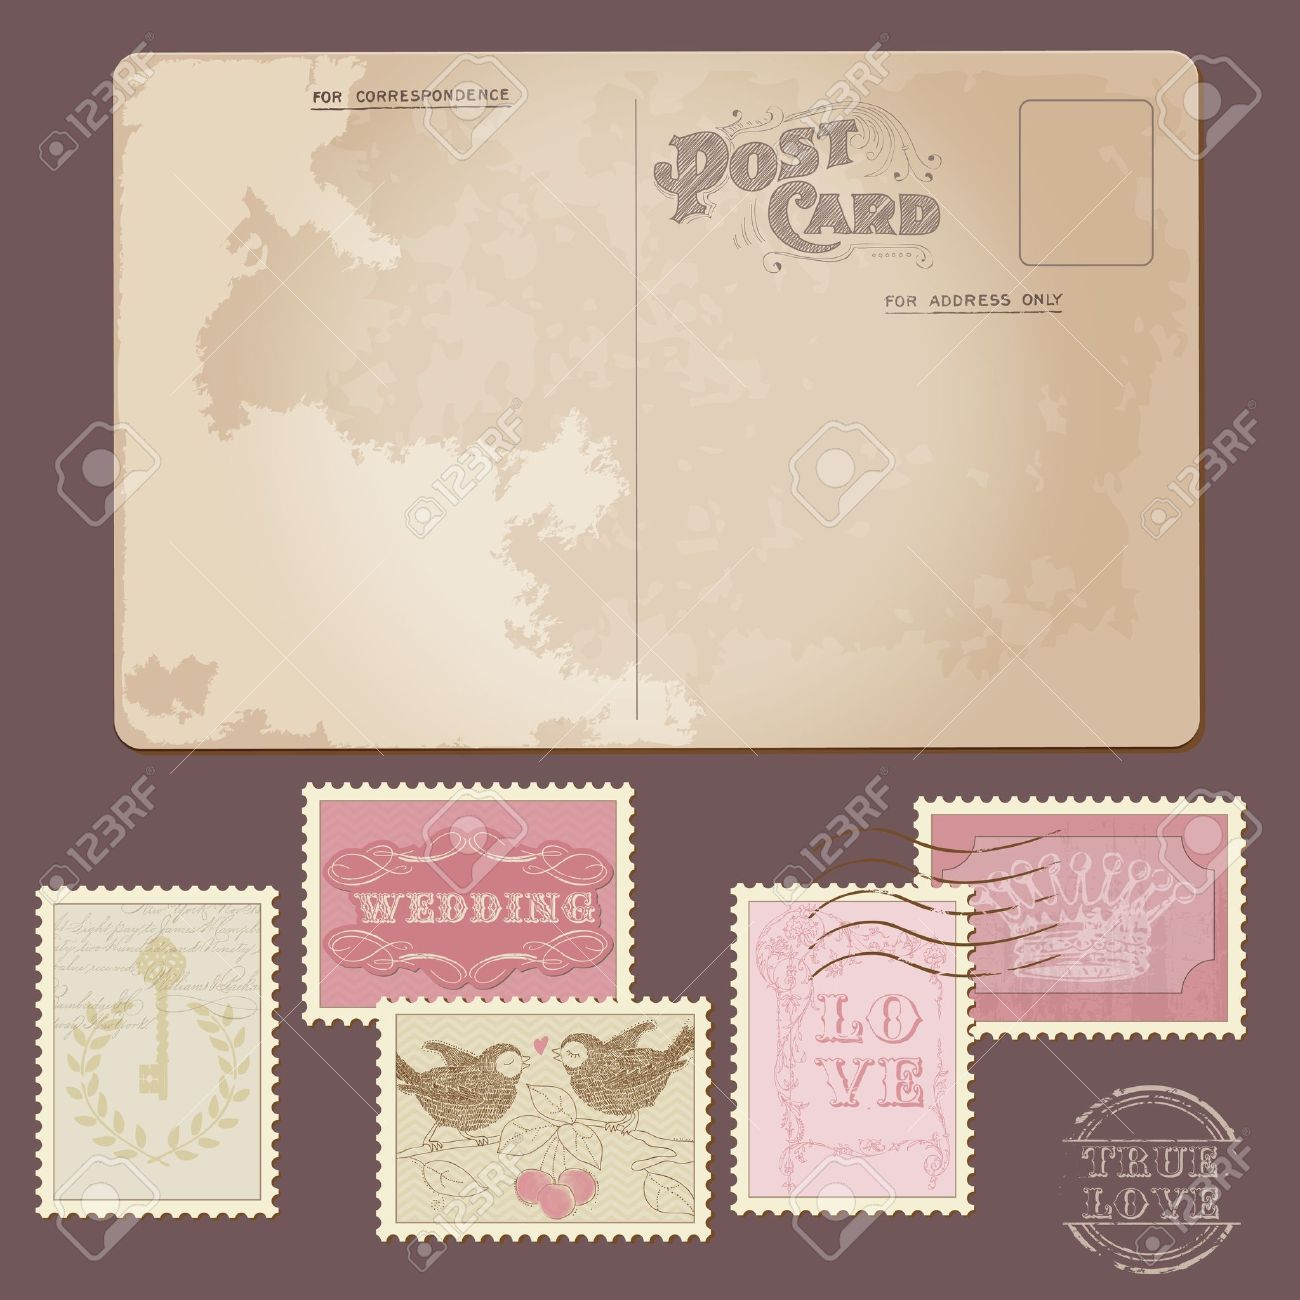 Postage Stamps For Wedding Invitations Plumegiant unitedarmyinfo